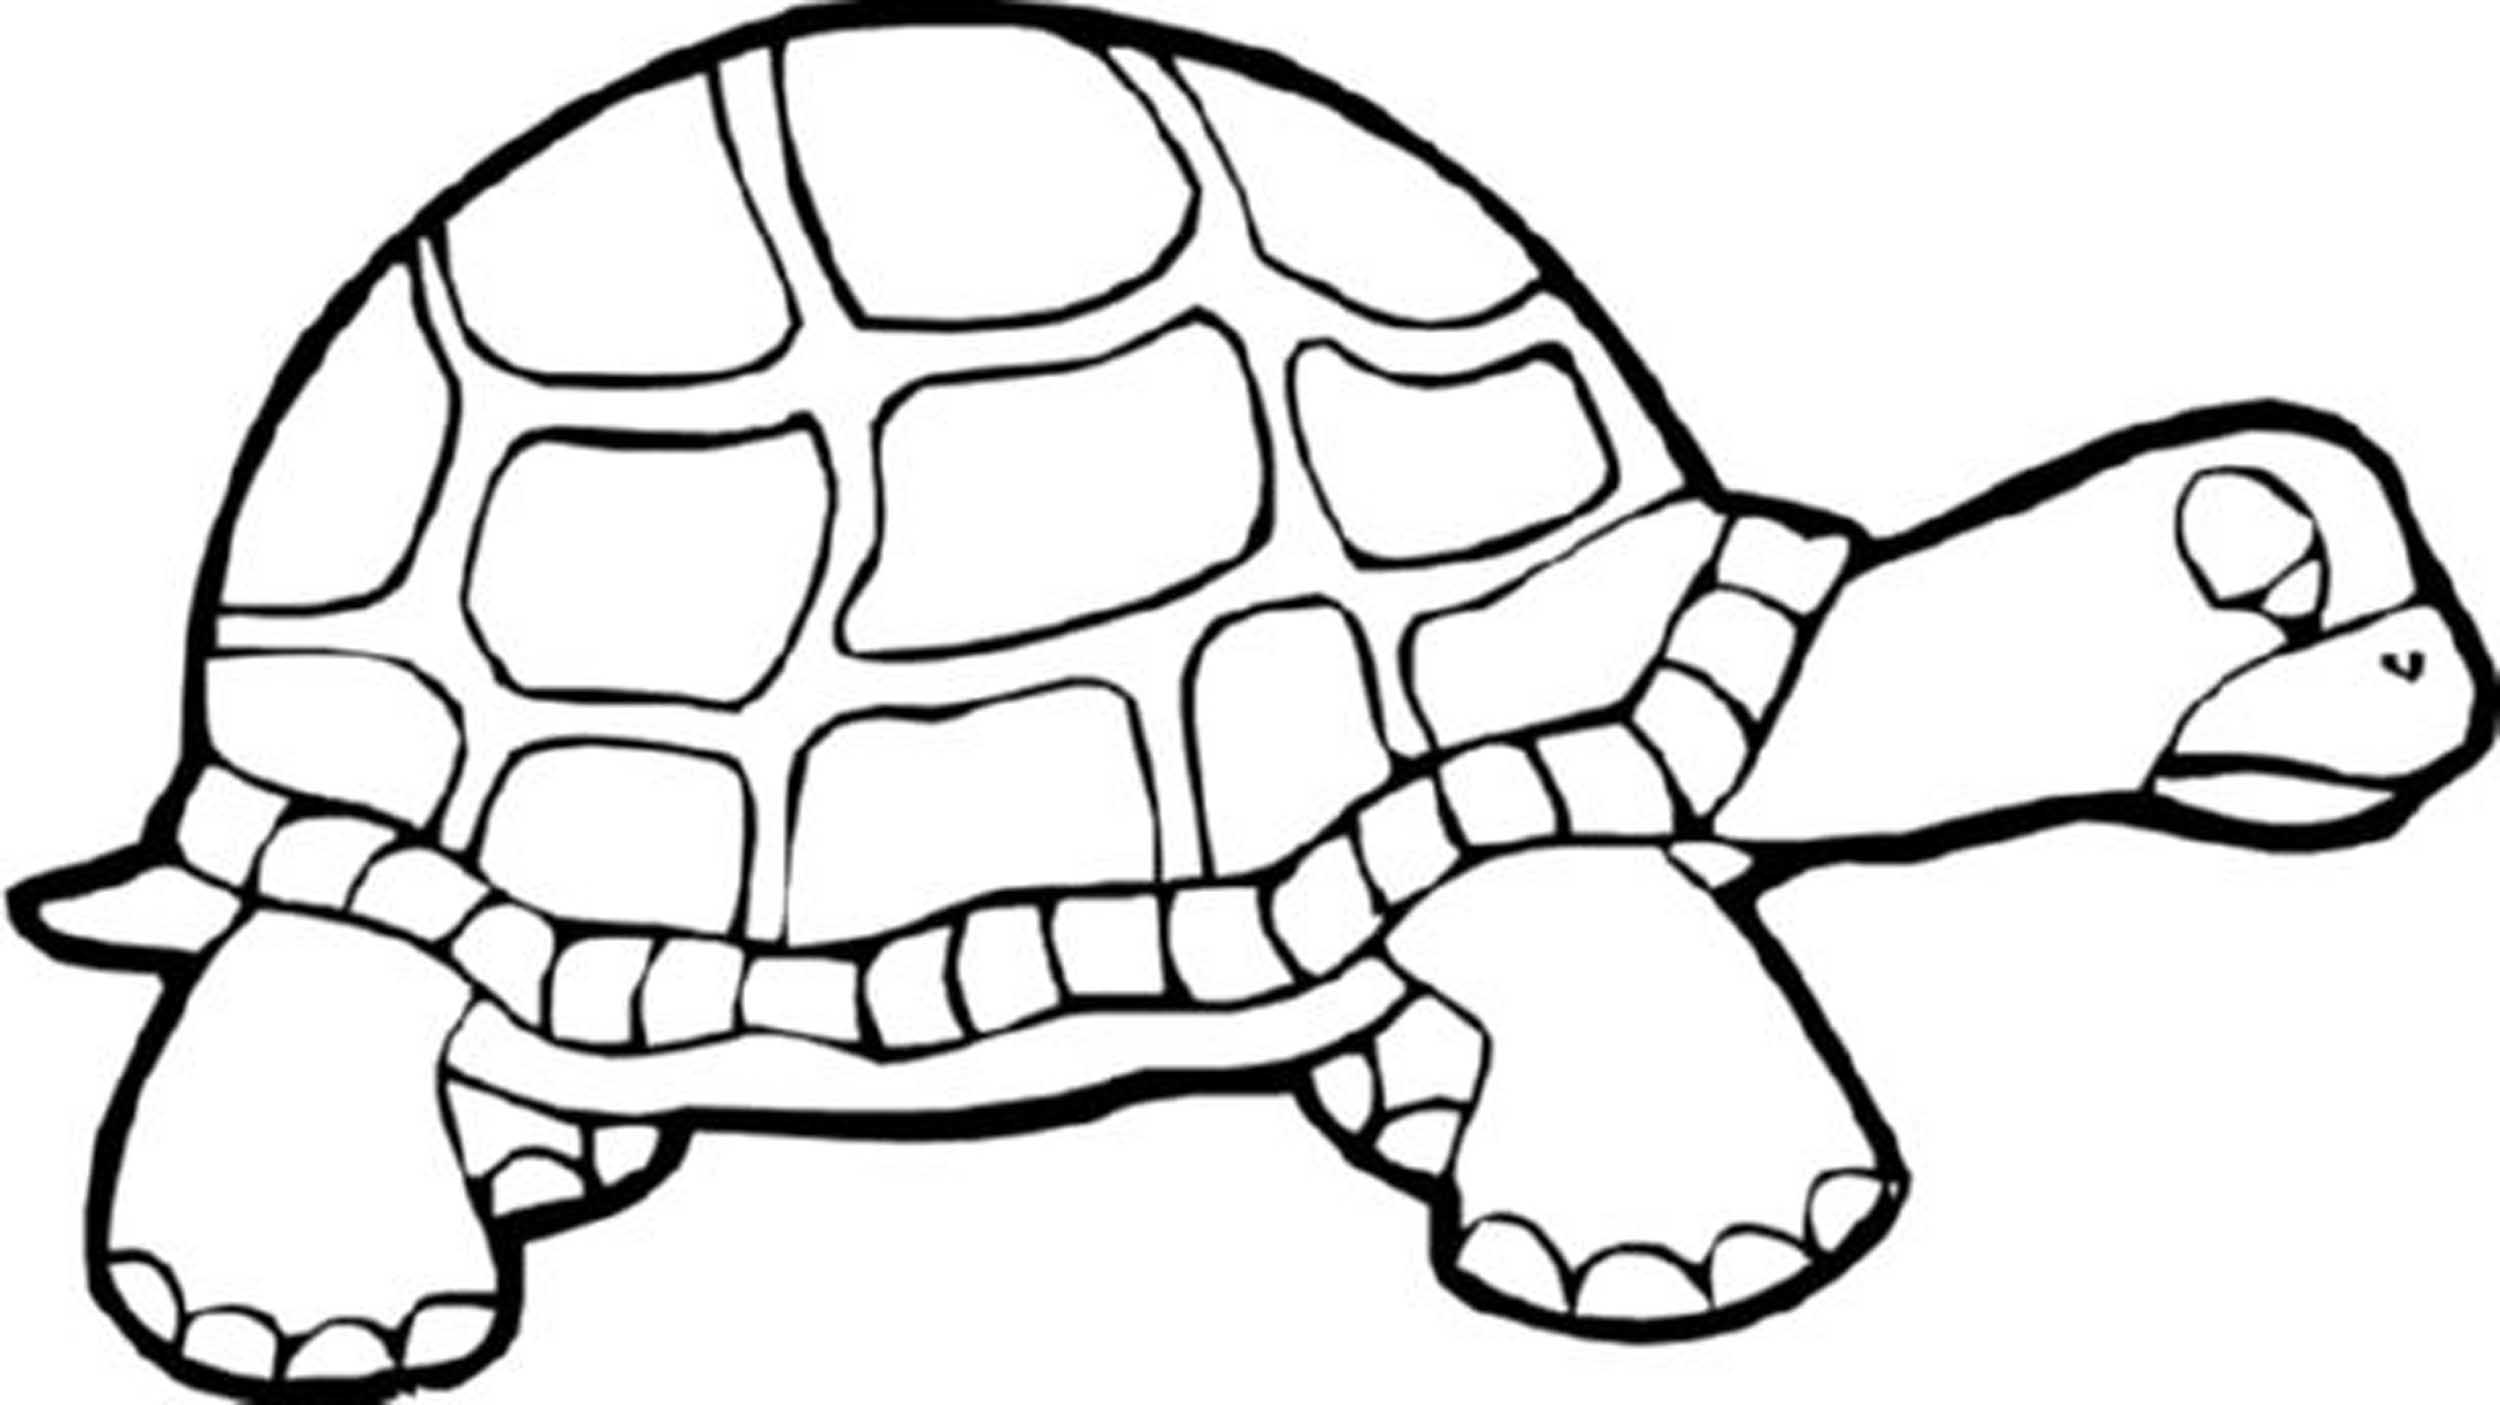 Turtle Coloring Pages Stunning Print & Download  Turtle Coloring Pages As The Educational Tool 2017